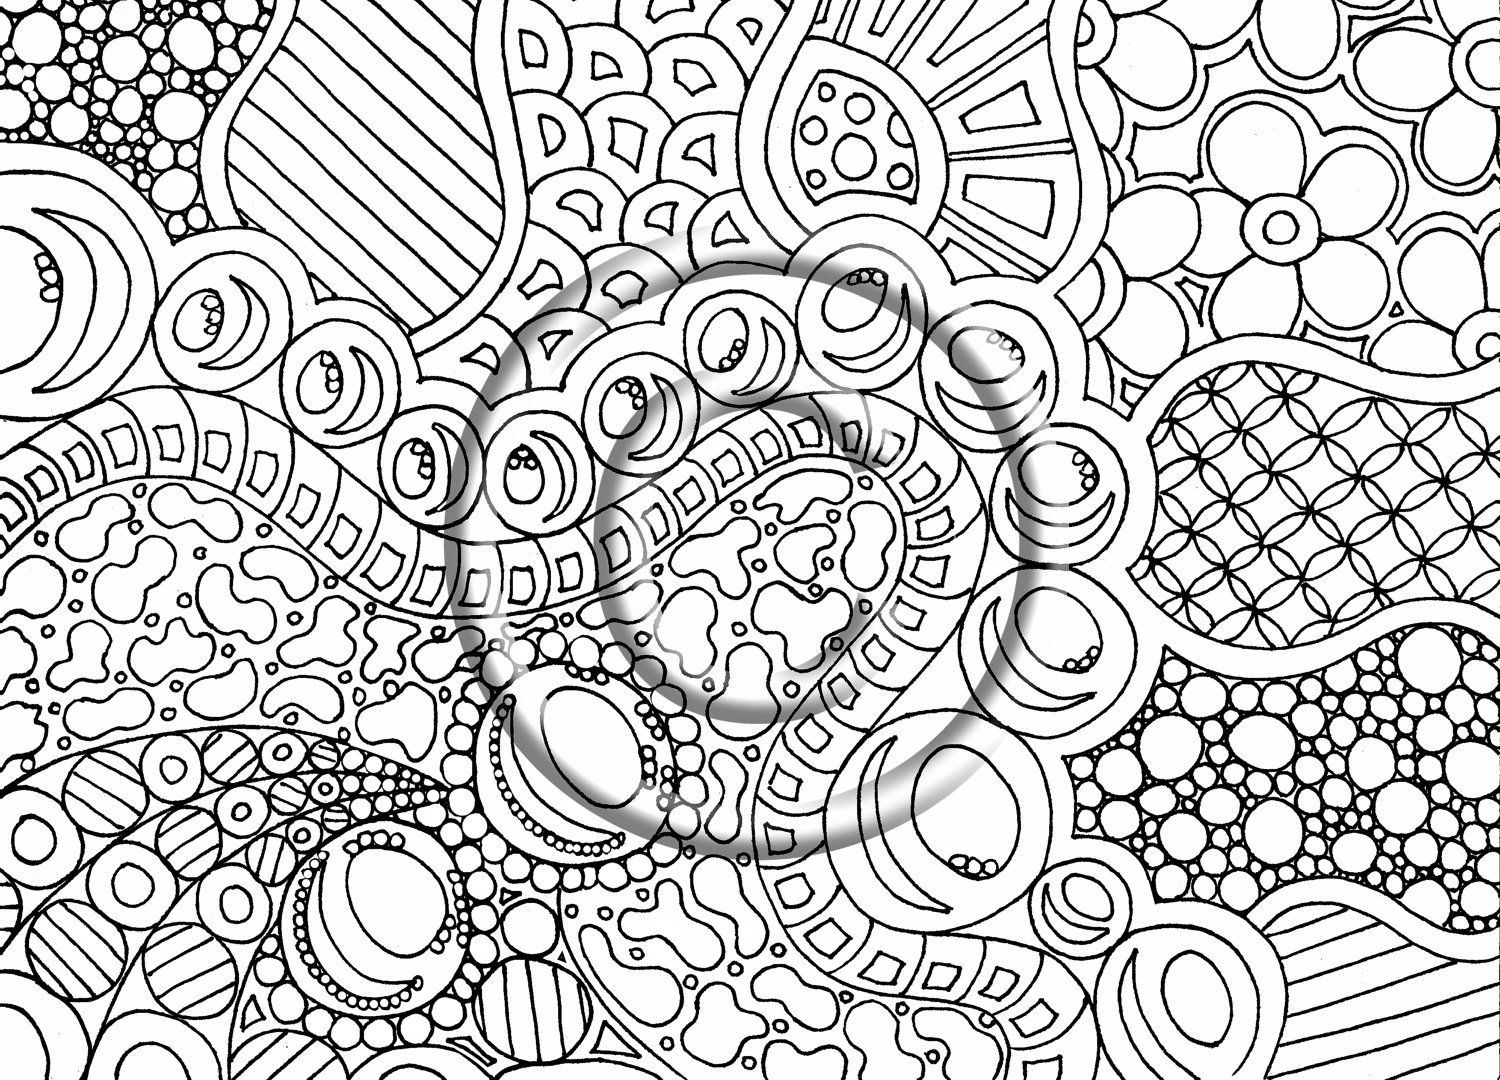 trippy coloring pages printable 50 trippy coloring pages coloring pages trippy printable